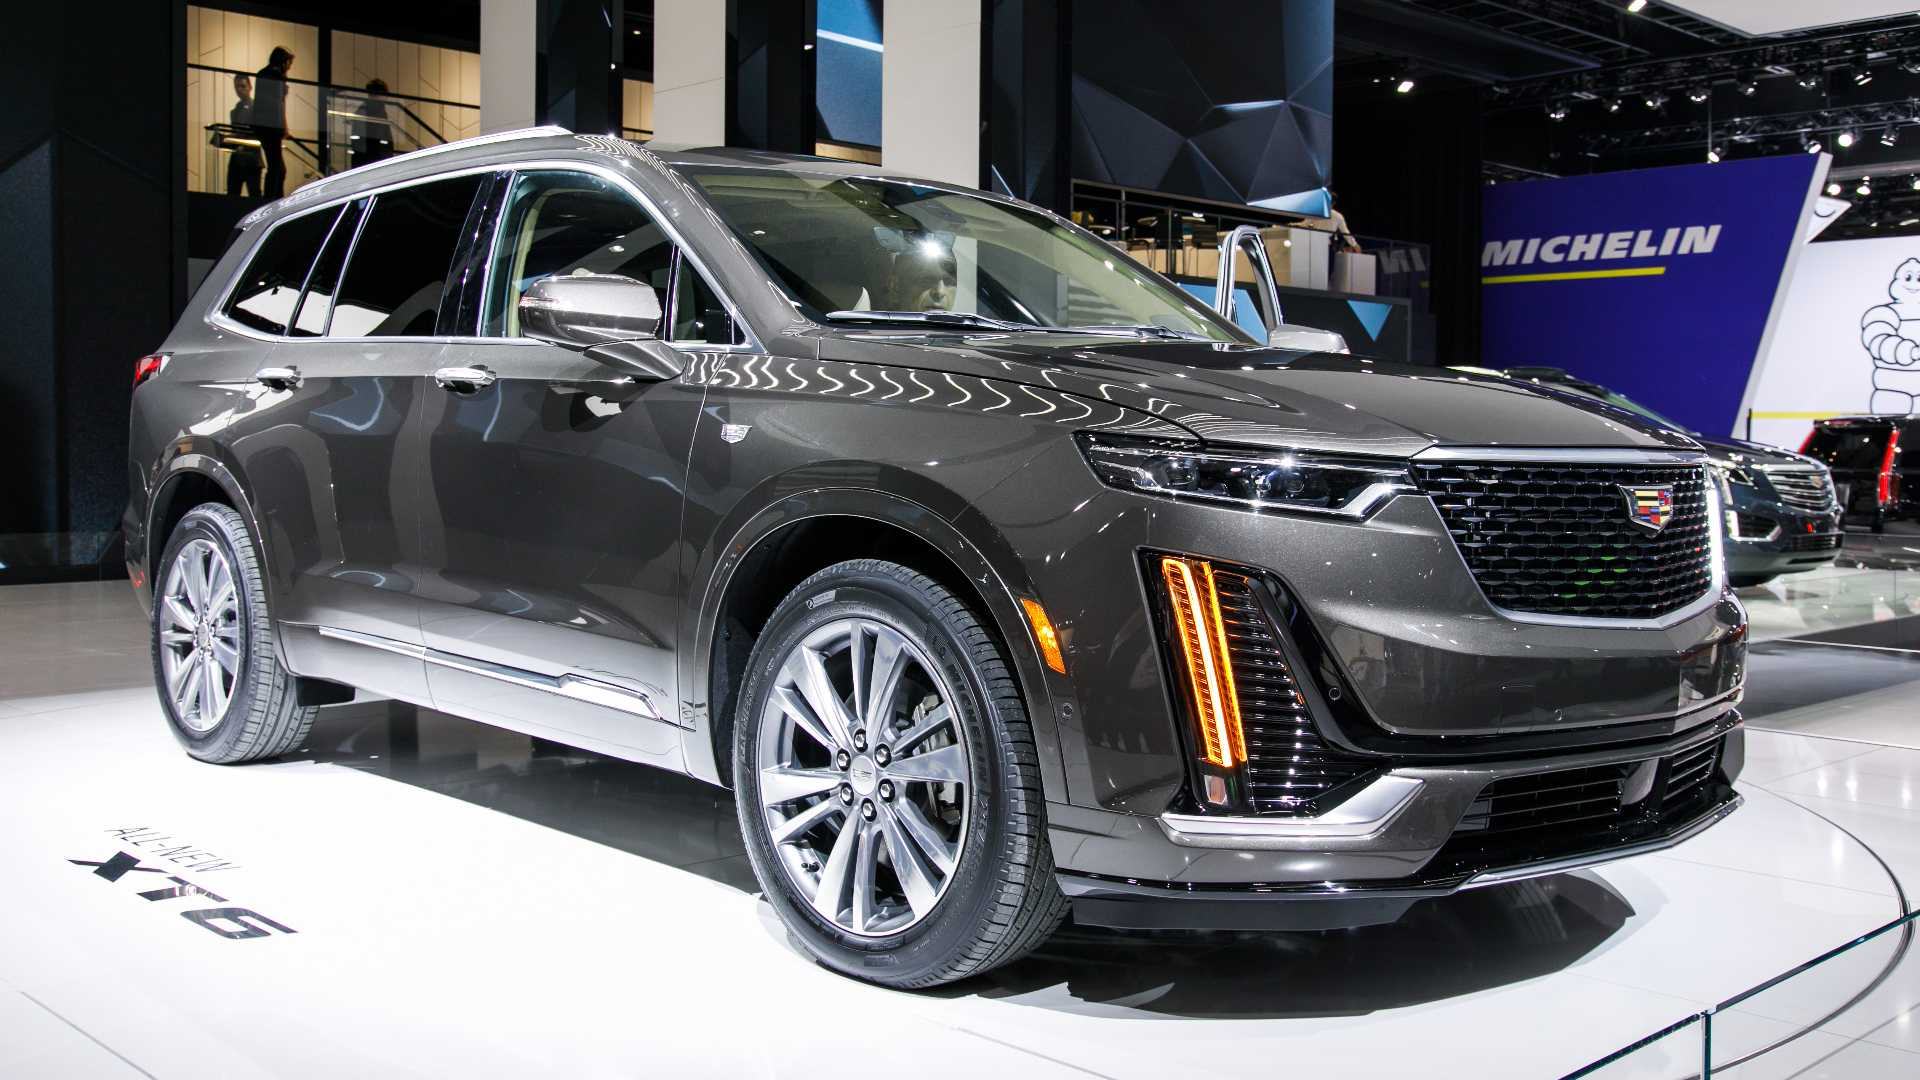 88 All New 2020 Cadillac Xt6 Length Images for 2020 Cadillac Xt6 Length